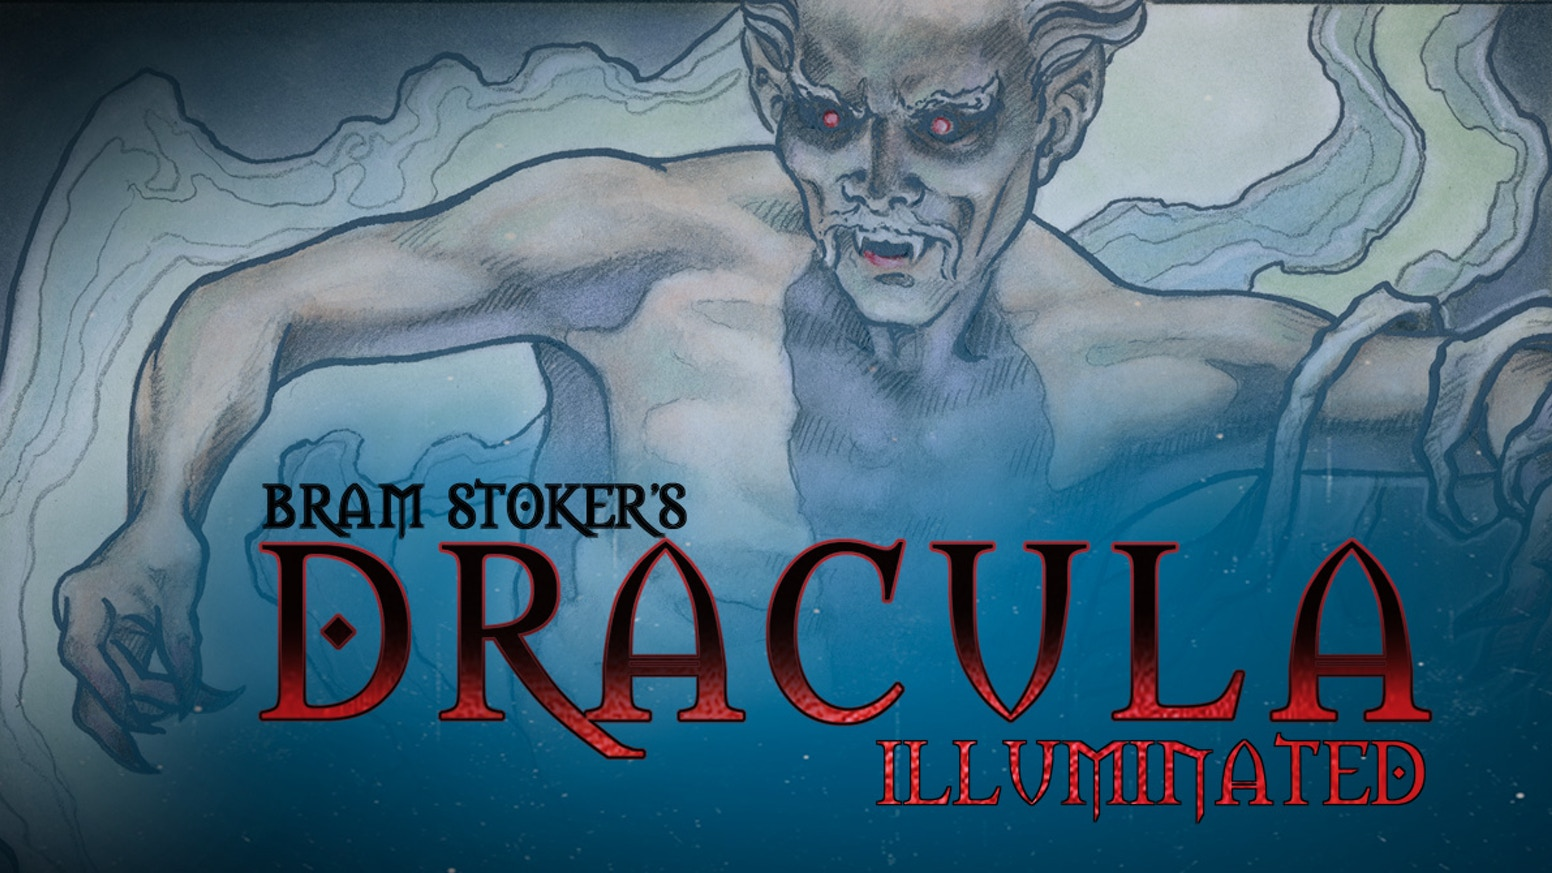 An illuminated edition of the original 1897 horror classic Dracula by Bram Stoker. Illustrated by Matt Hughes. Limited to only 1000